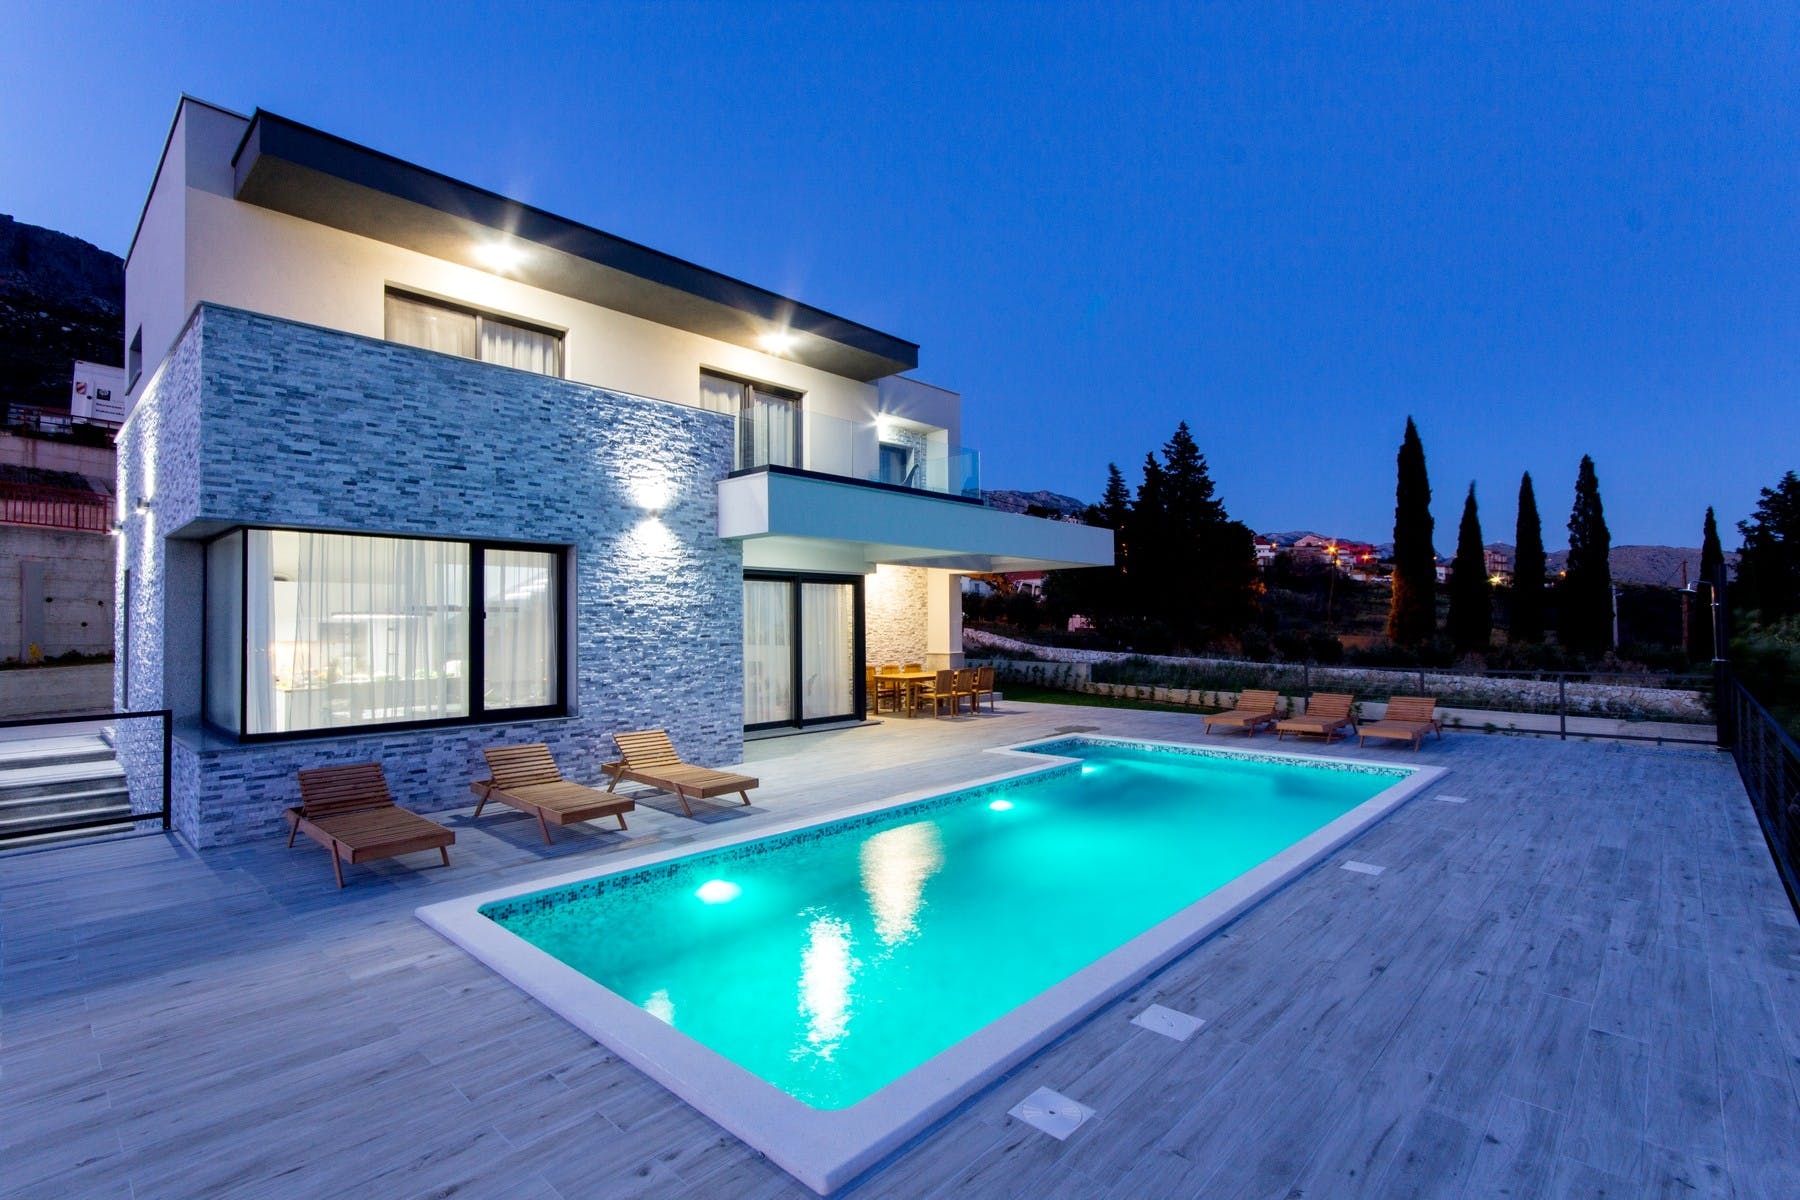 Fully furnished villa with swimming pool near Split for sale